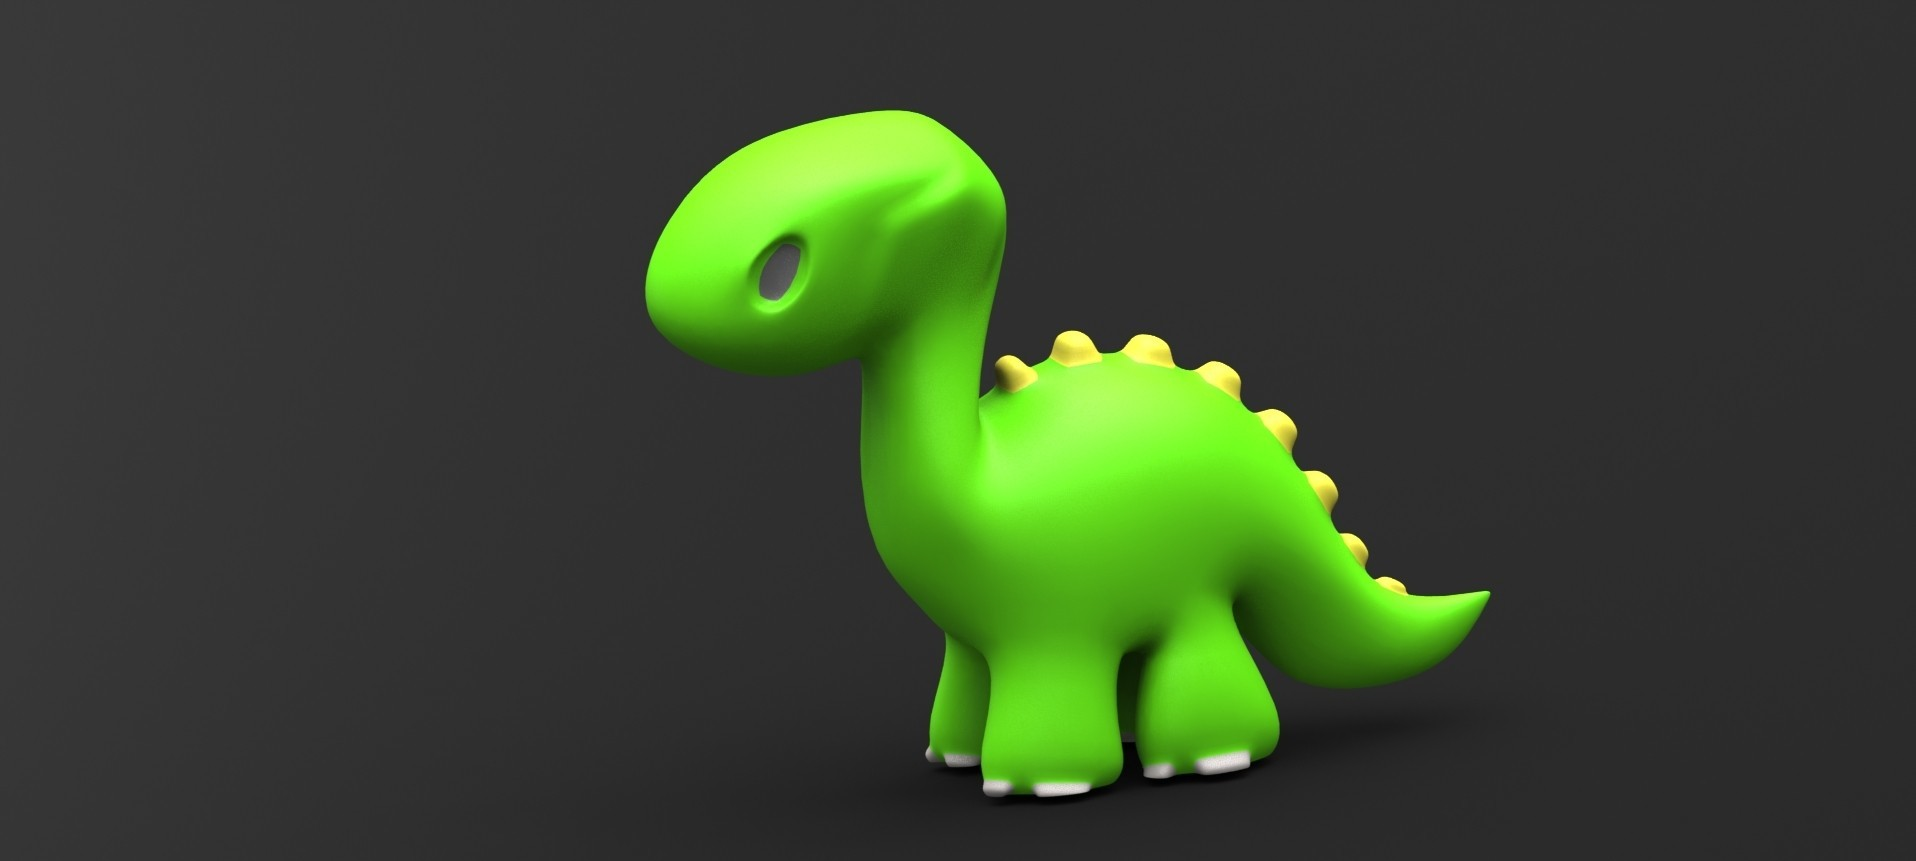 Dino toy 1.2.JPG Download STL file Dino toy • Template to 3D print, Majs84